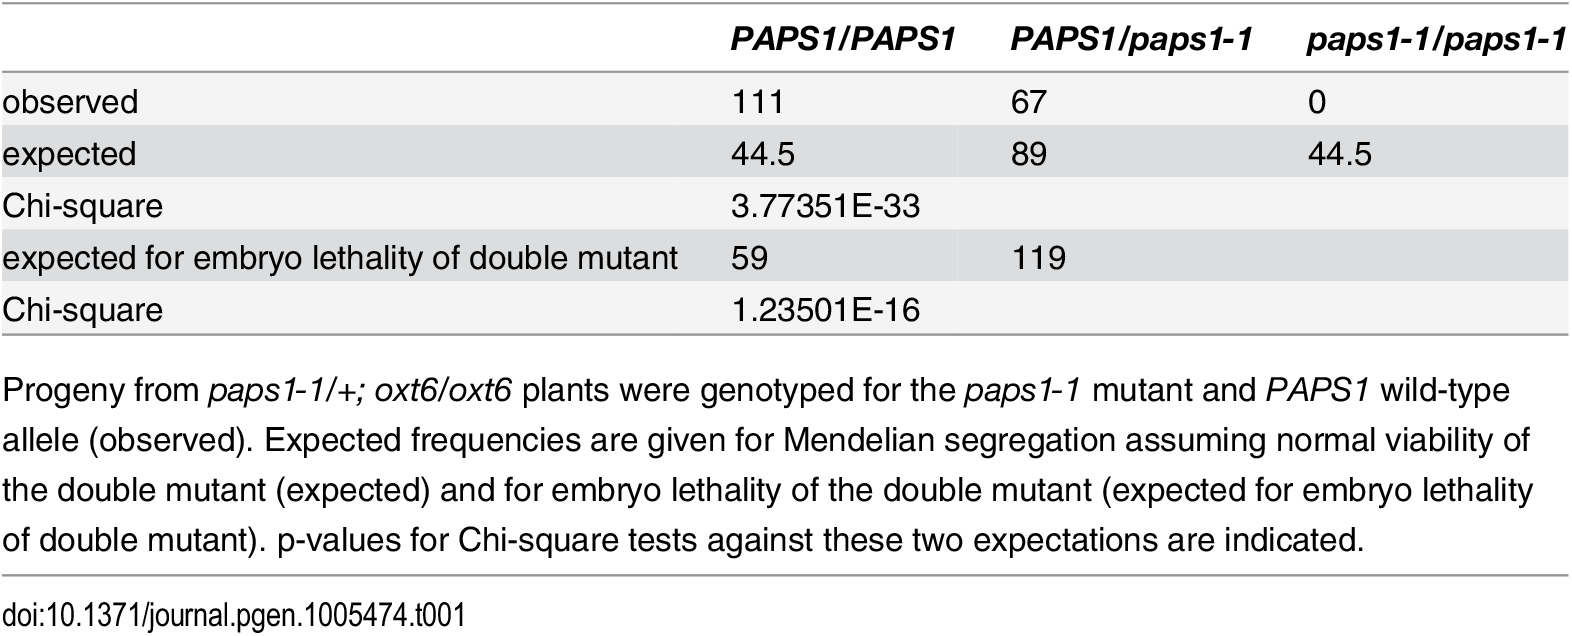 Distribution of <i>PAPS1</i> genotypes in the progeny of <i>paps1-1/+</i>; <i>oxt6/oxt6</i> plants.